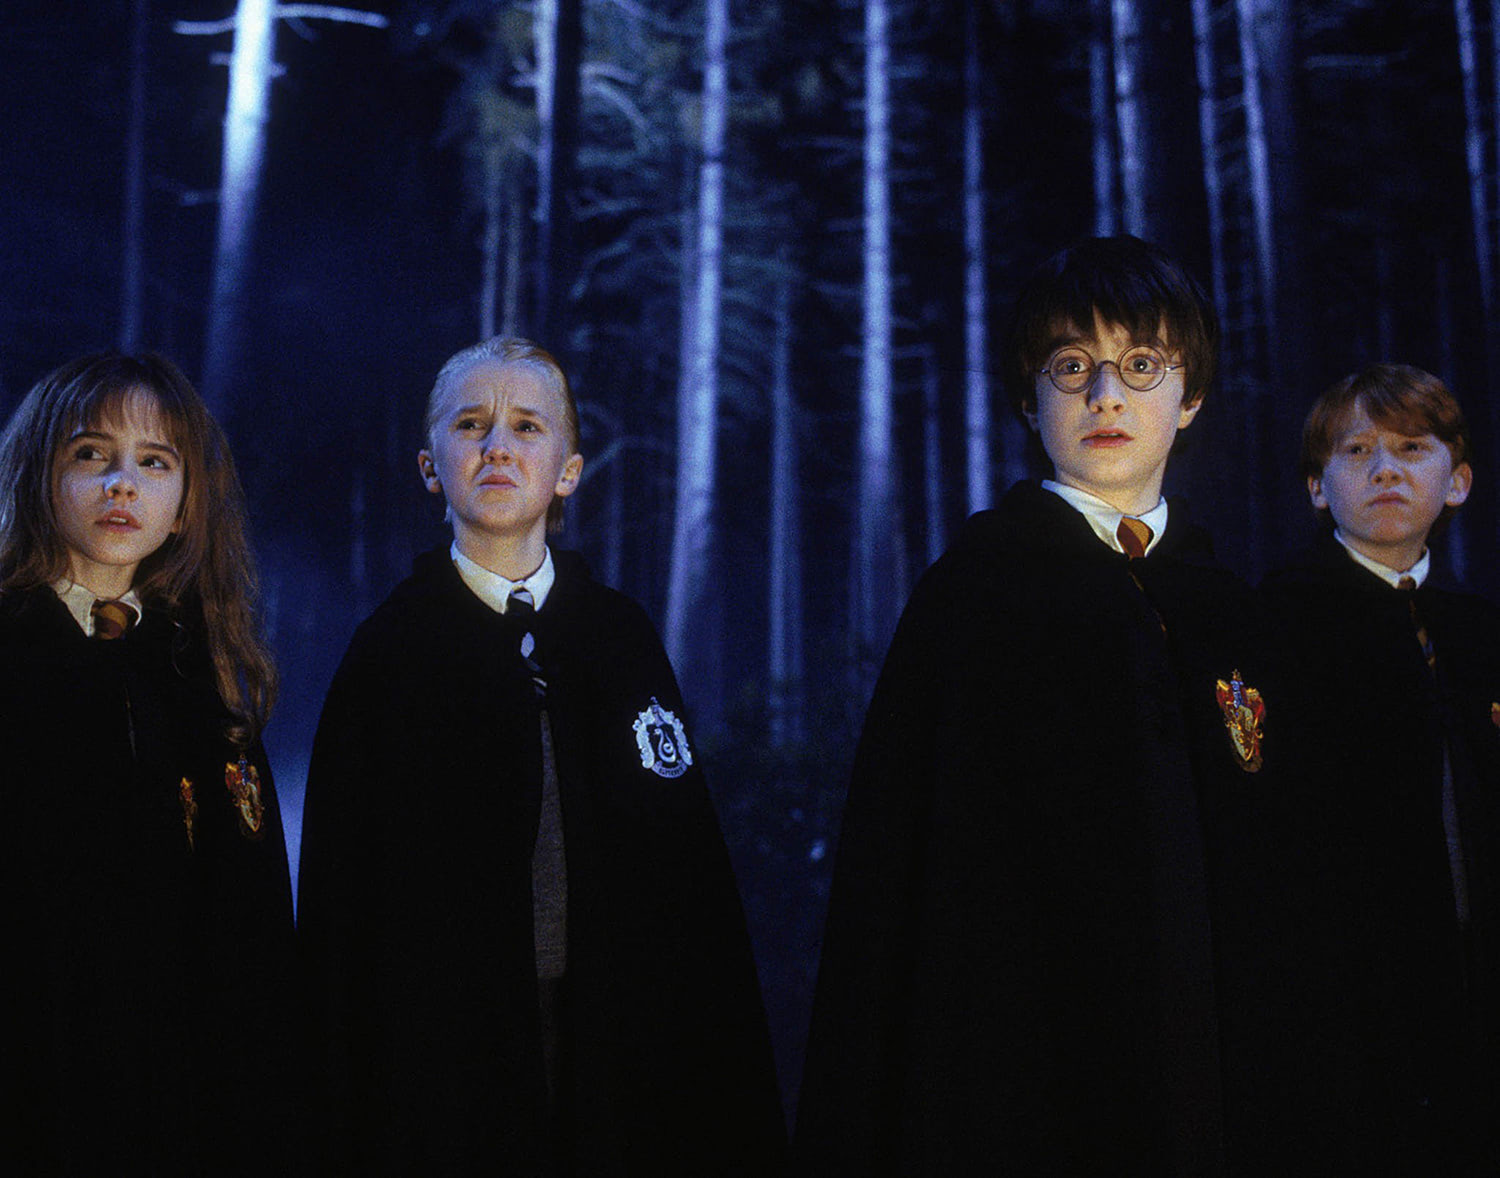 Hermione, Draco, Harry and Ron in the Forbidden Forest